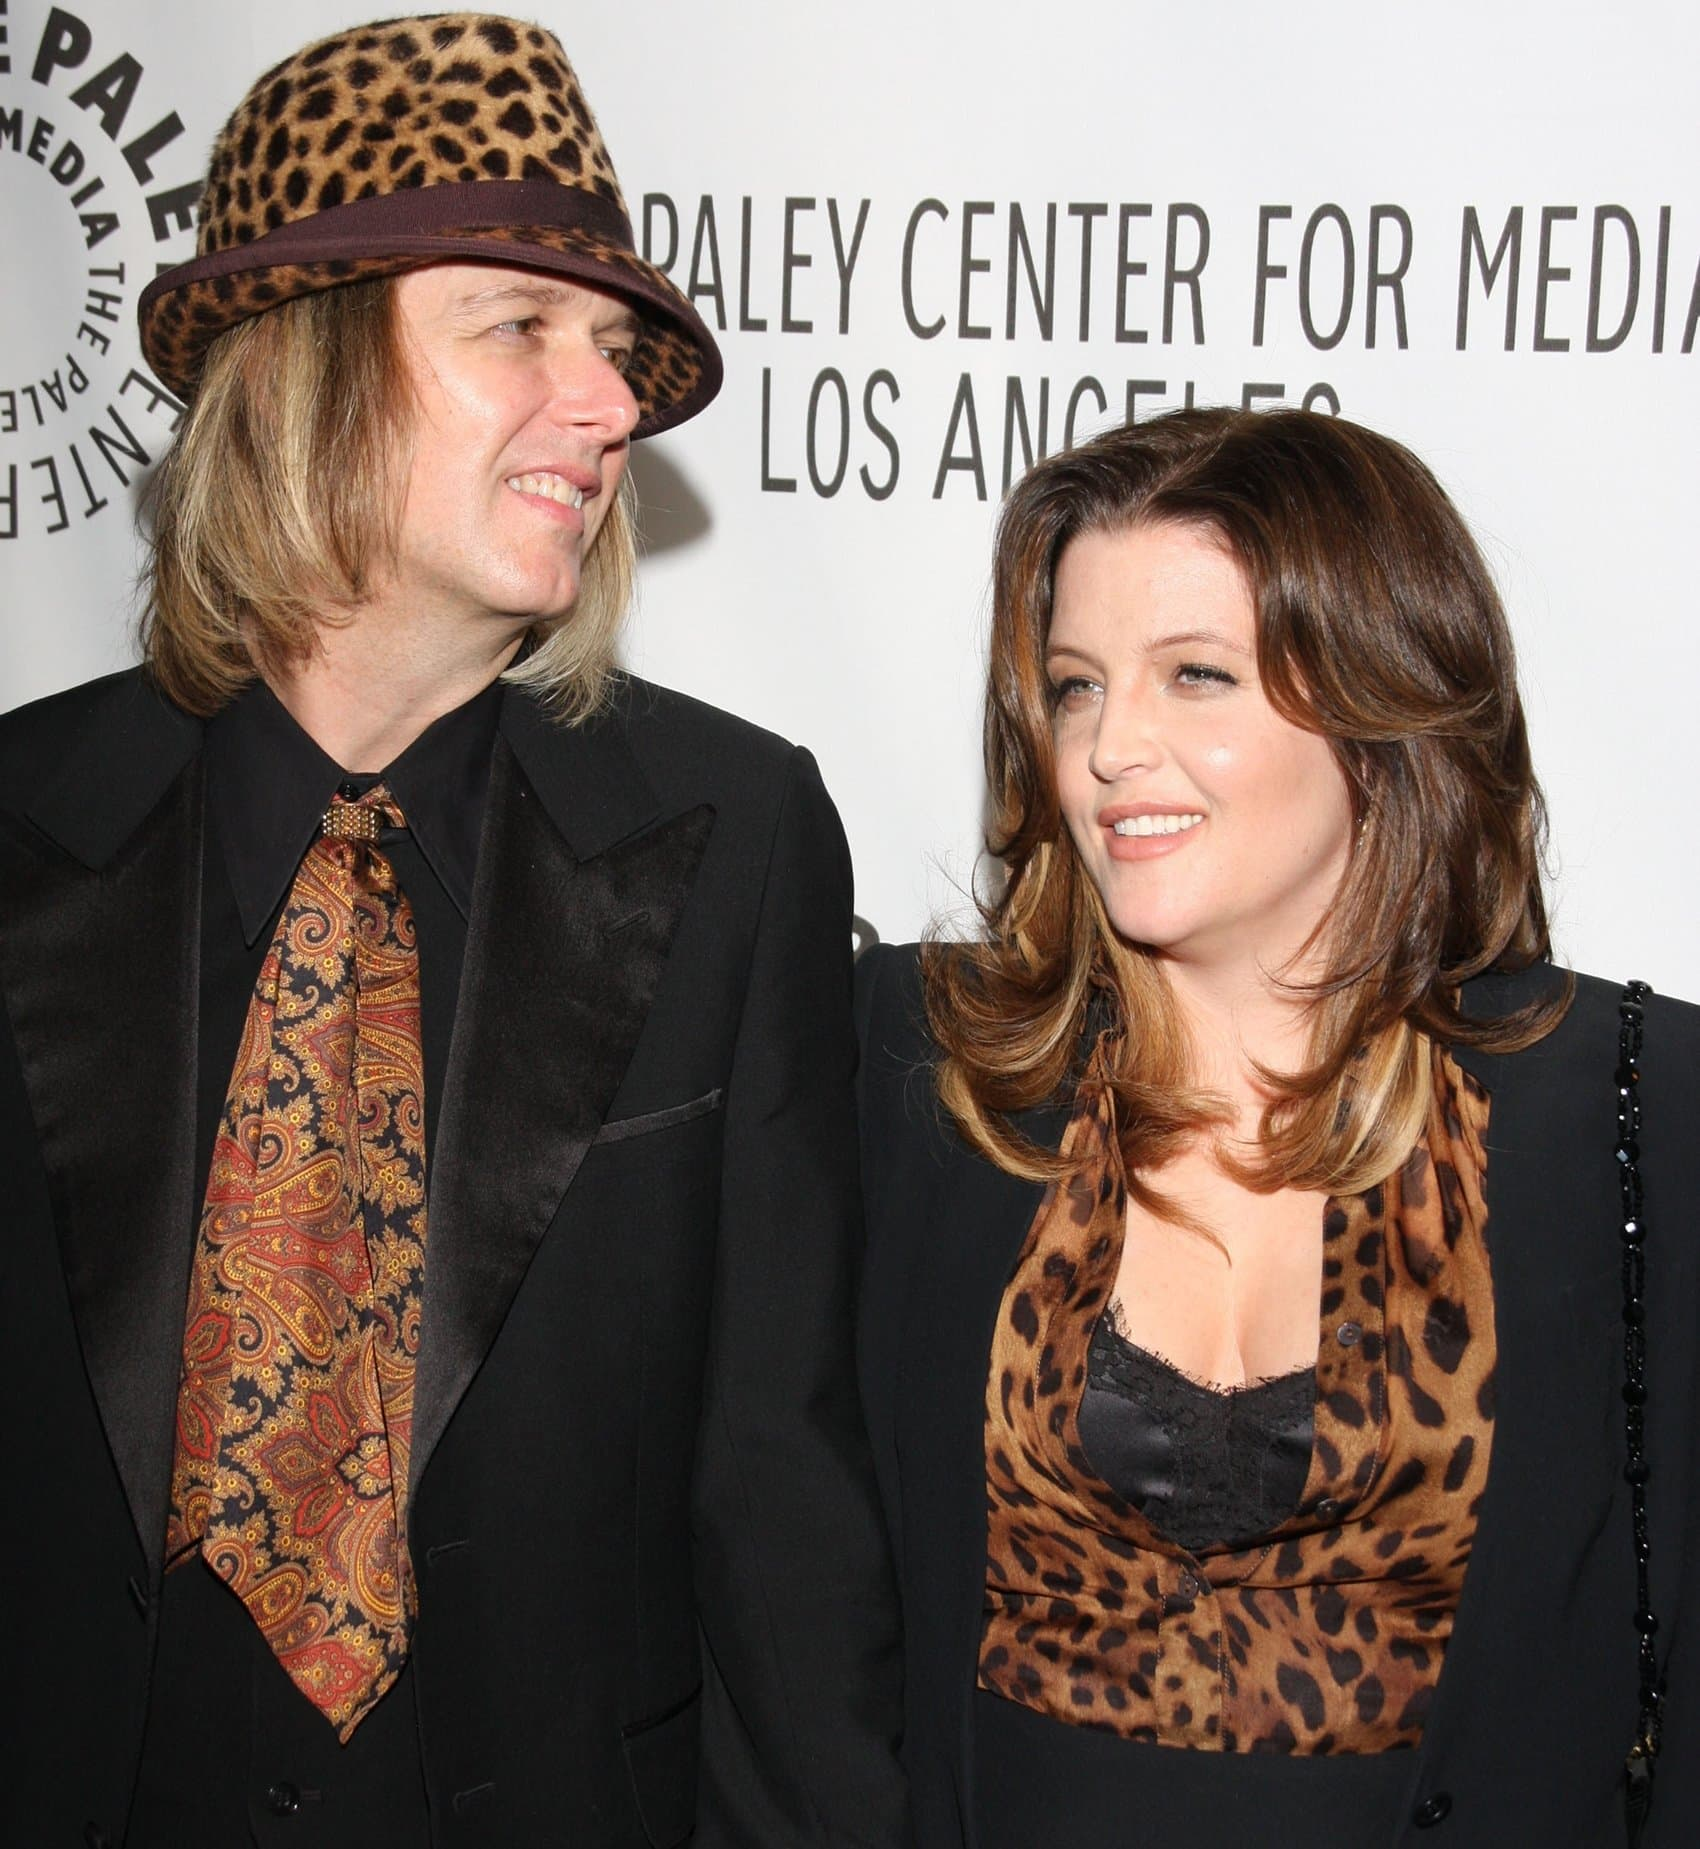 Her fourth marriage, Michael Lockwood and Lisa Marie Presley married on January 22, 2006, in a traditional Japanese ceremony in Kyoto, Japan